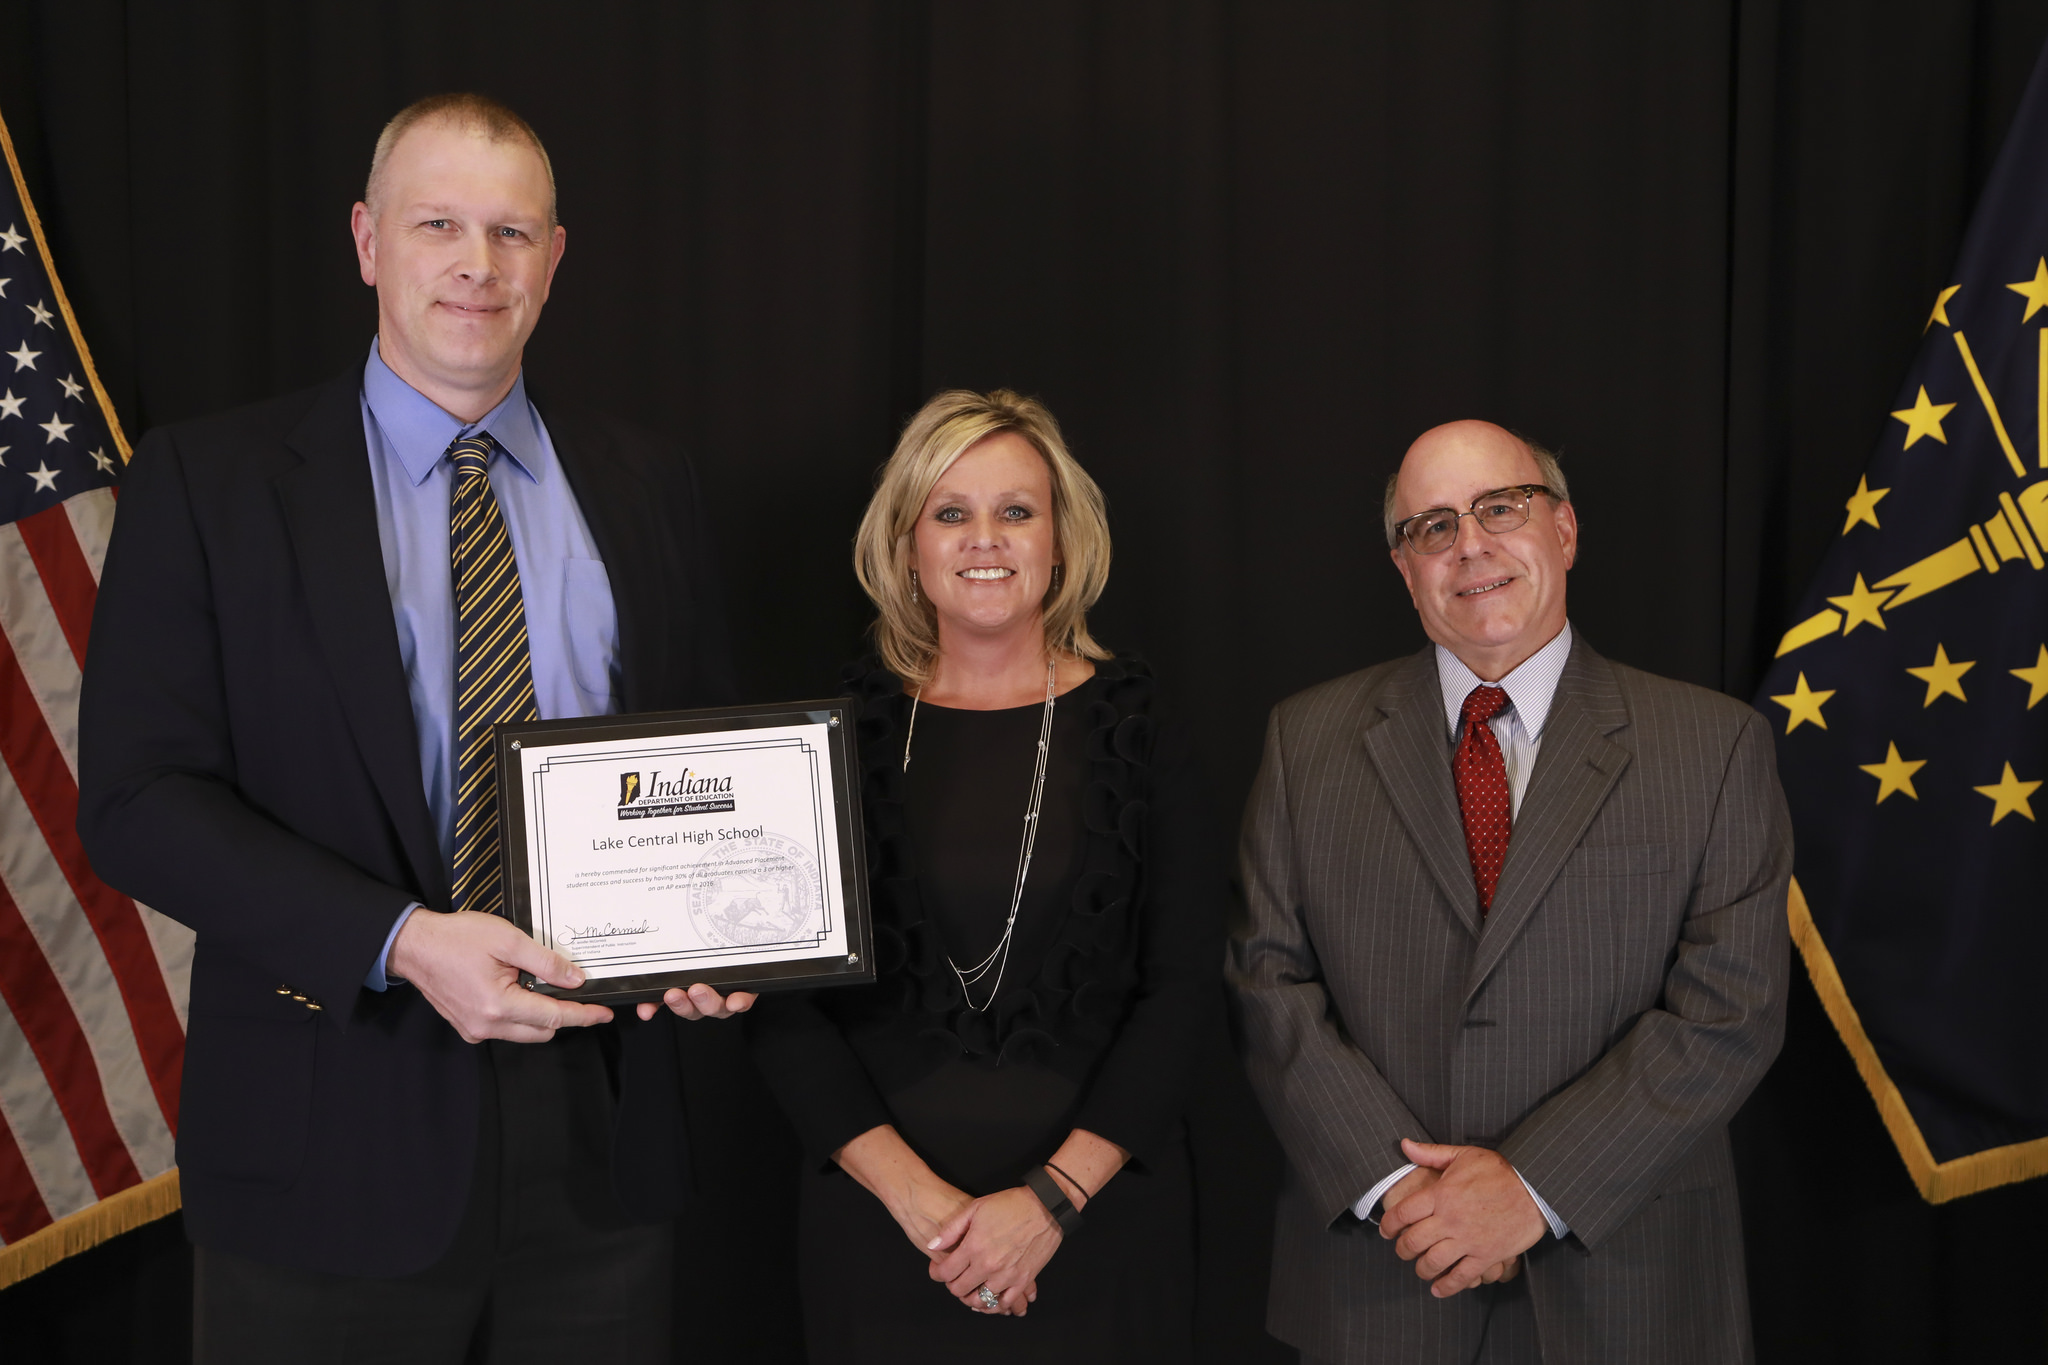 Congratulations to LCHS and the entire corporation for being recognized as a top school in the state of Indiana for having students score a 3 or higher on Advanced Placement tests. Principal Sean Begley and Chemistry teacher Kendall Smith received the award from State Superintendent Jennifer McCormack.